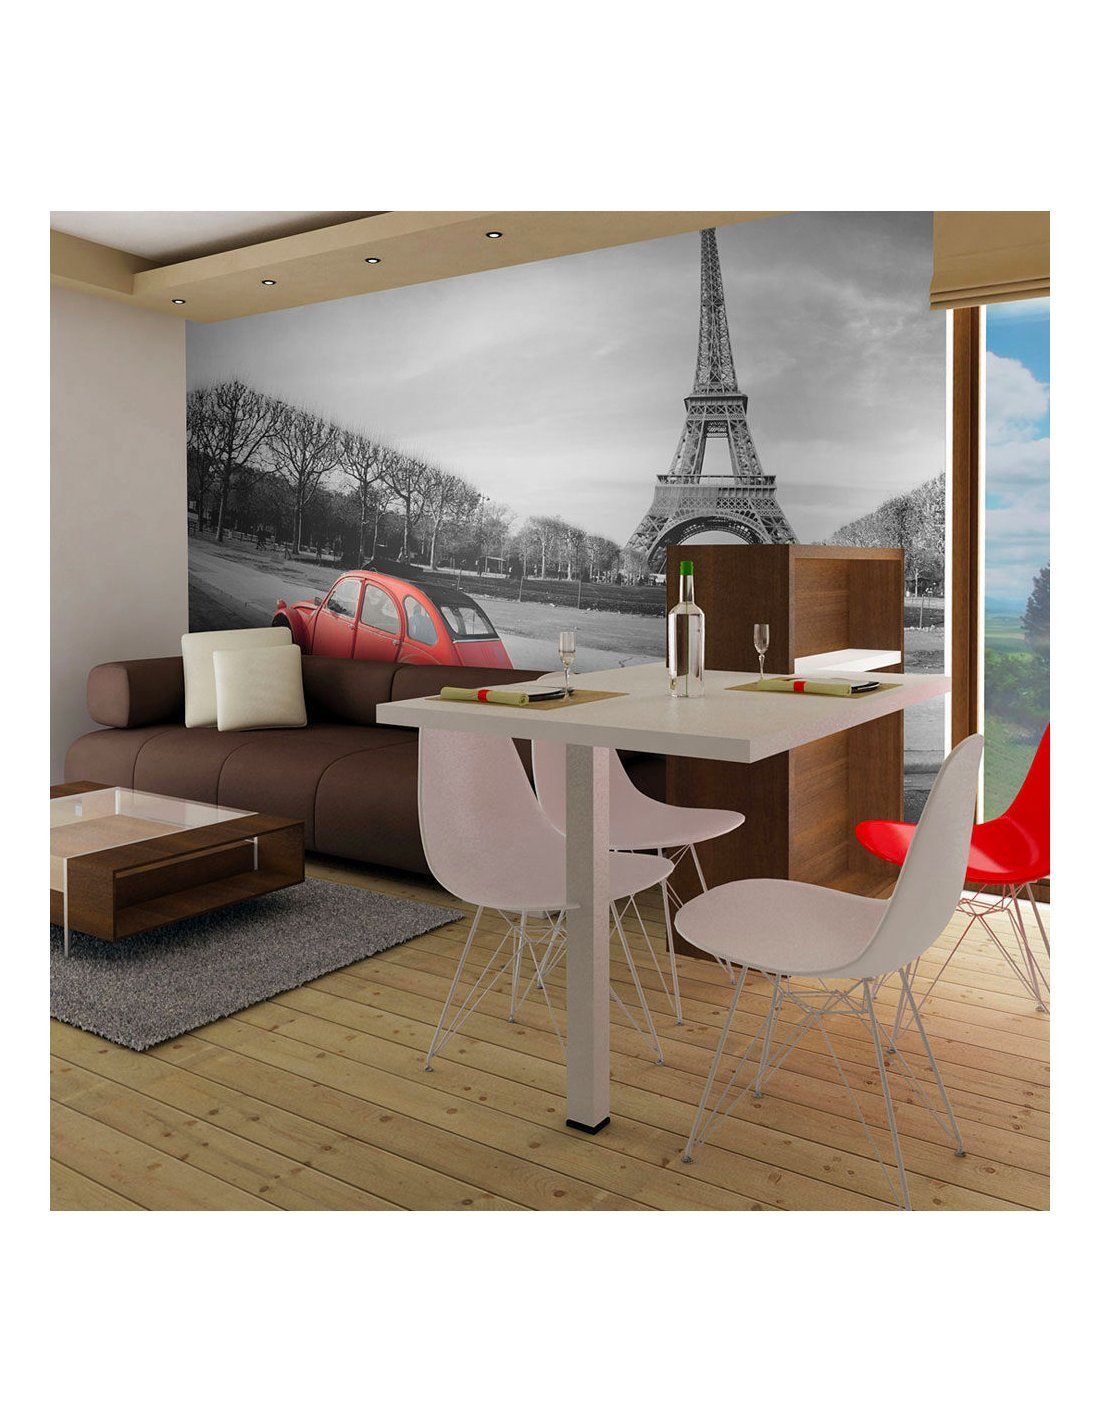 papier peint tour eiffel et voiture rouge artgeist. Black Bedroom Furniture Sets. Home Design Ideas